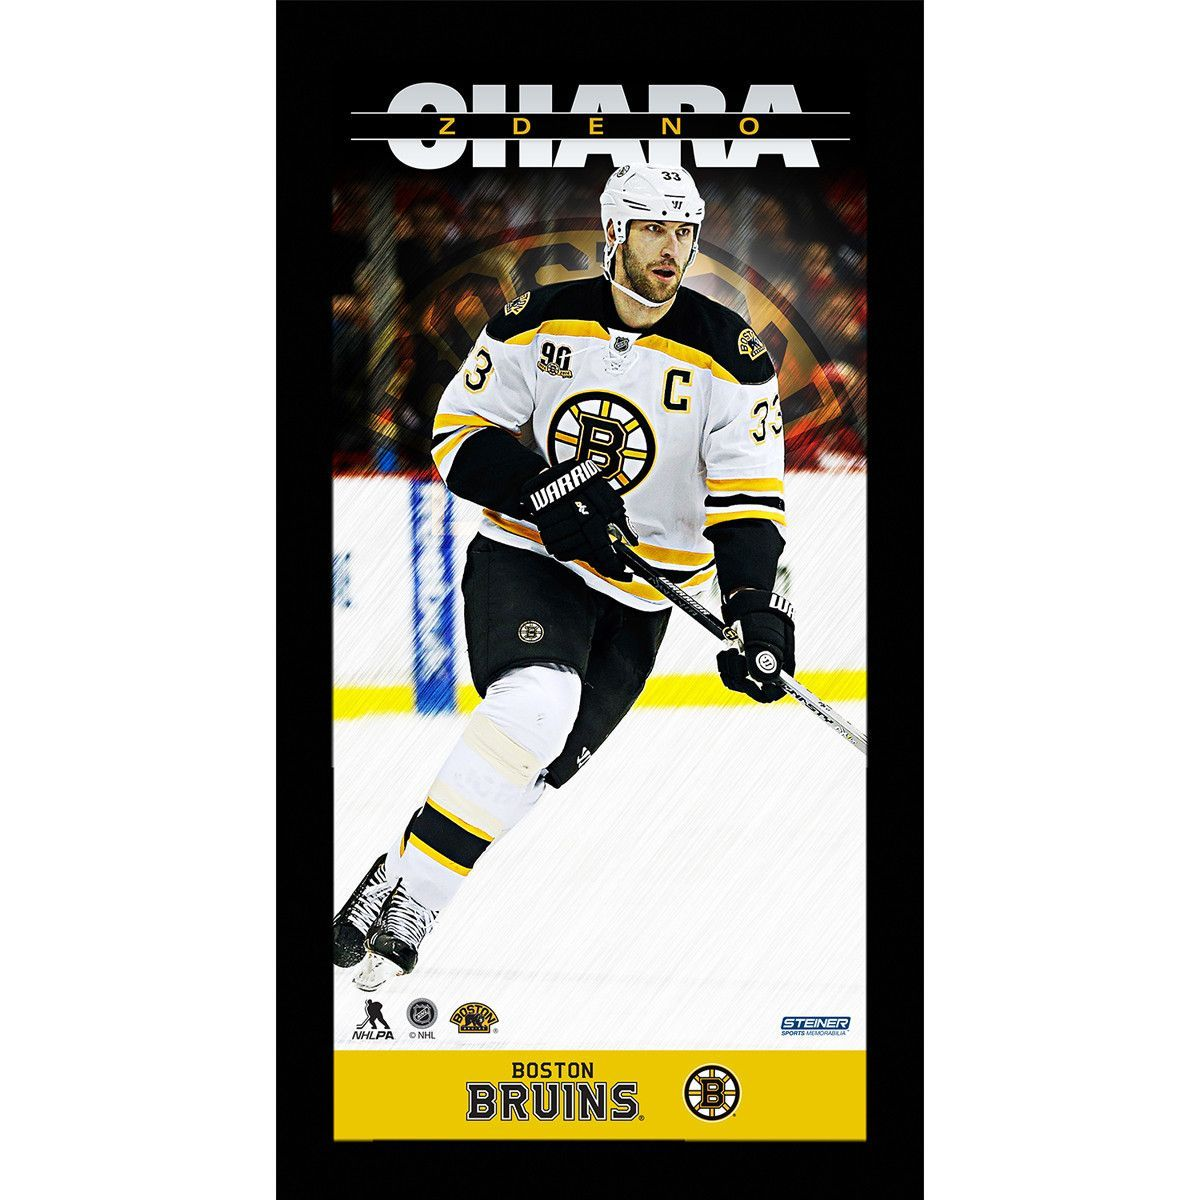 Zdeno Chara Player Profile 10x20 Framed Photo - Celebrate one of the ...